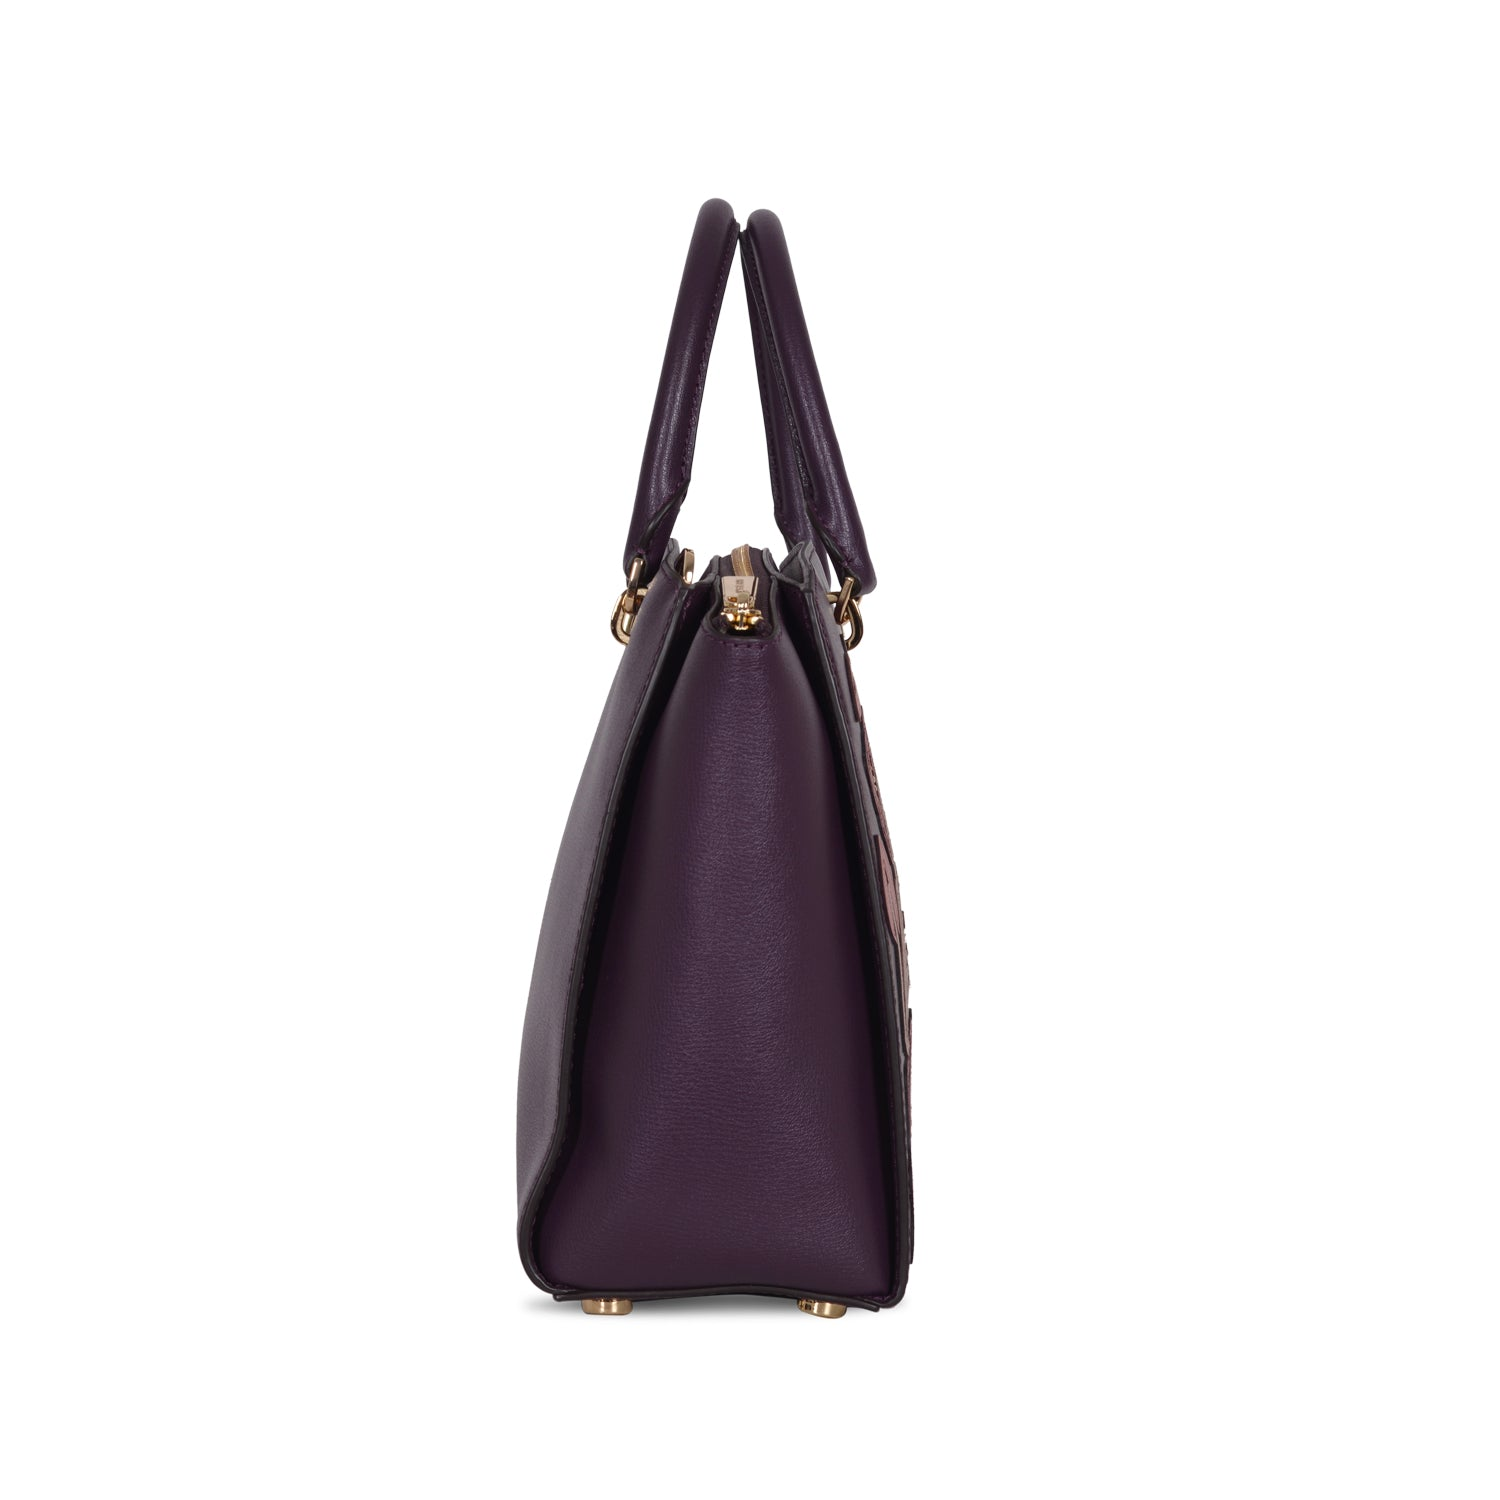 MICHAEL KORS EMBROIDERED DAMSON LEATHER TOP HANDLE BAG